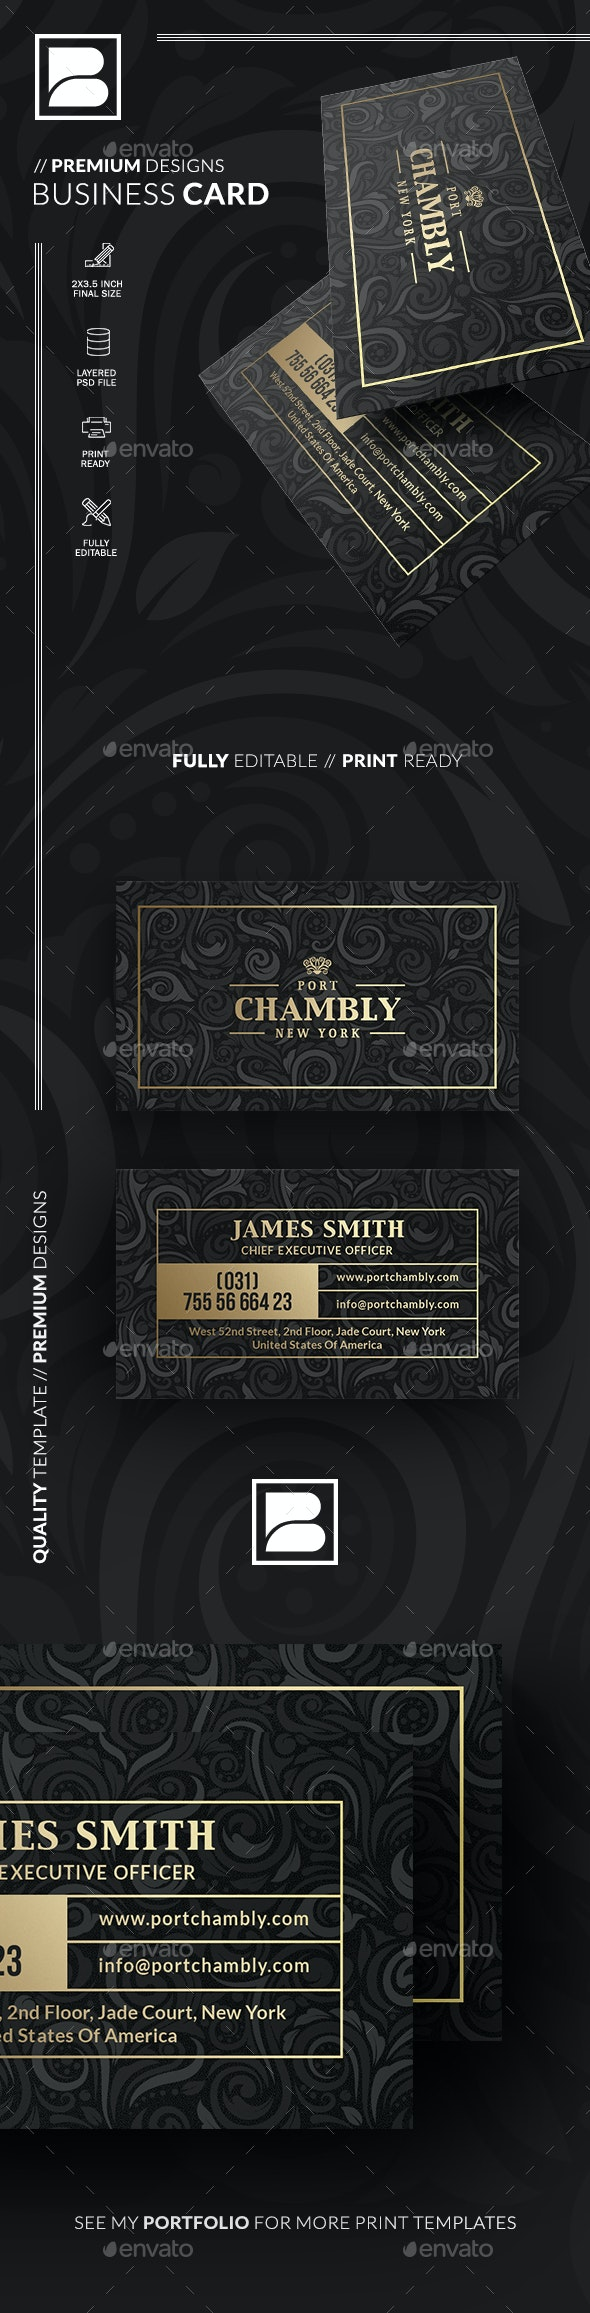 Gold And Black Business Card - Business Cards Print Templates